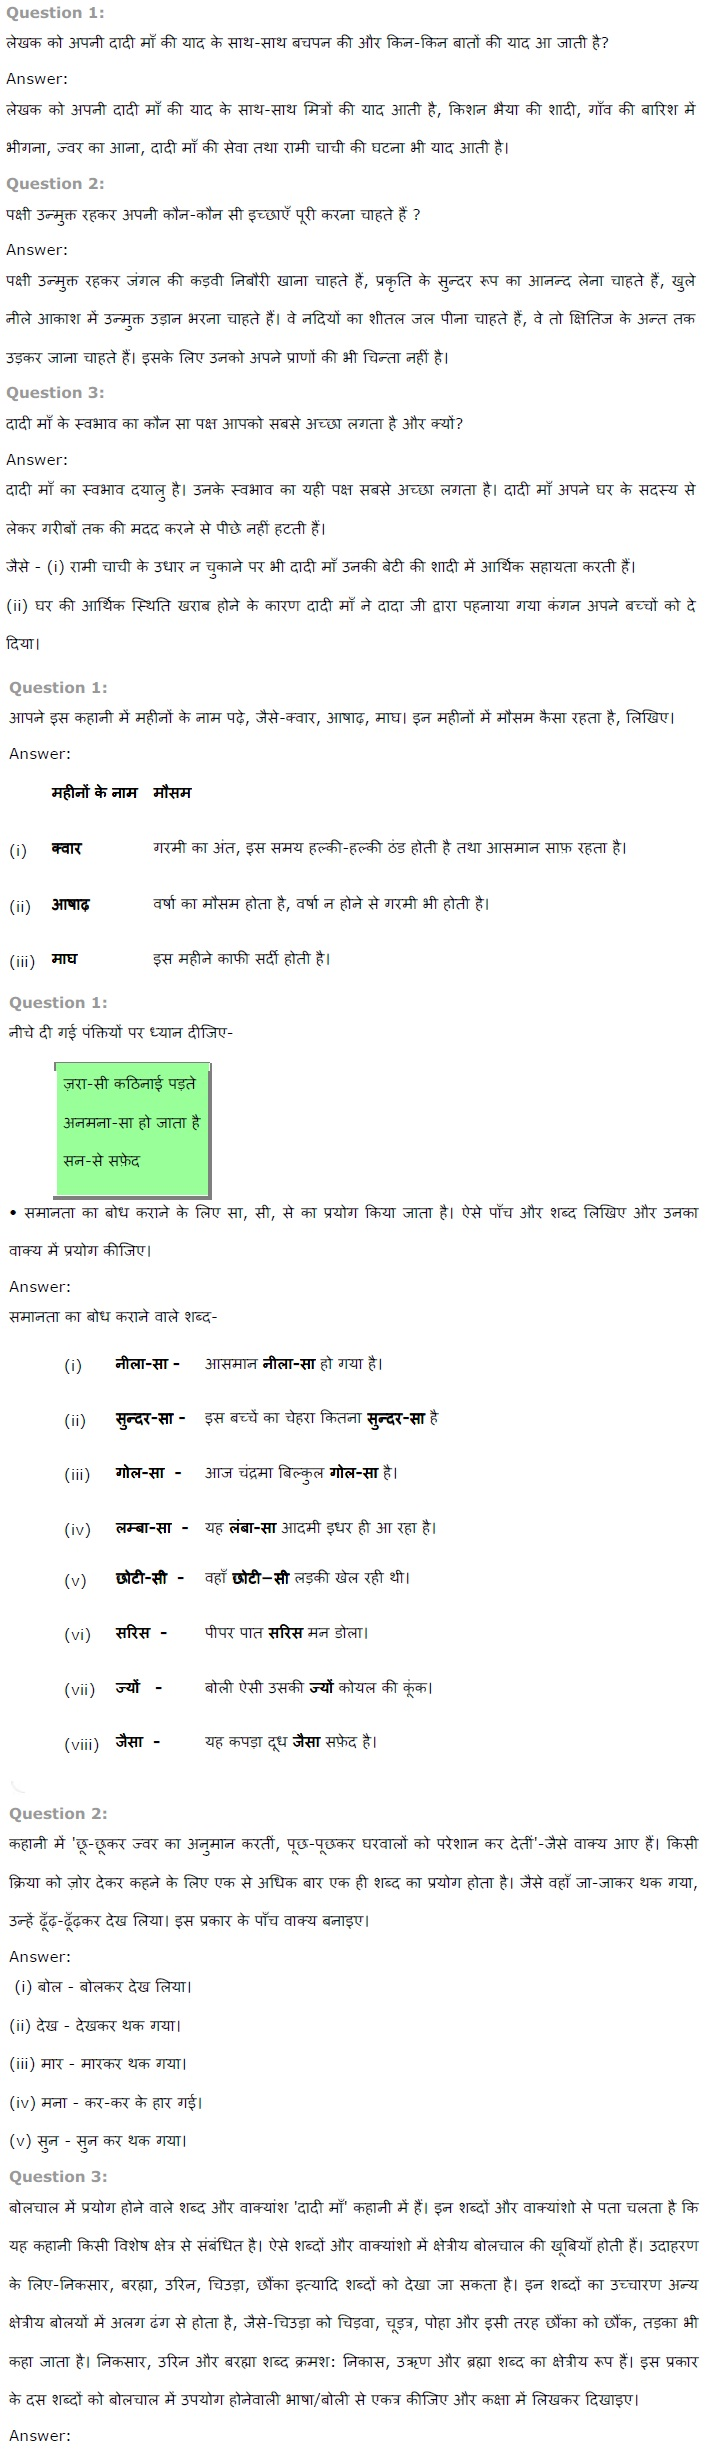 NCERT Solutions for Class 7th Hindi Chapter 2 दादी माँ PDF Download Free 2018-19